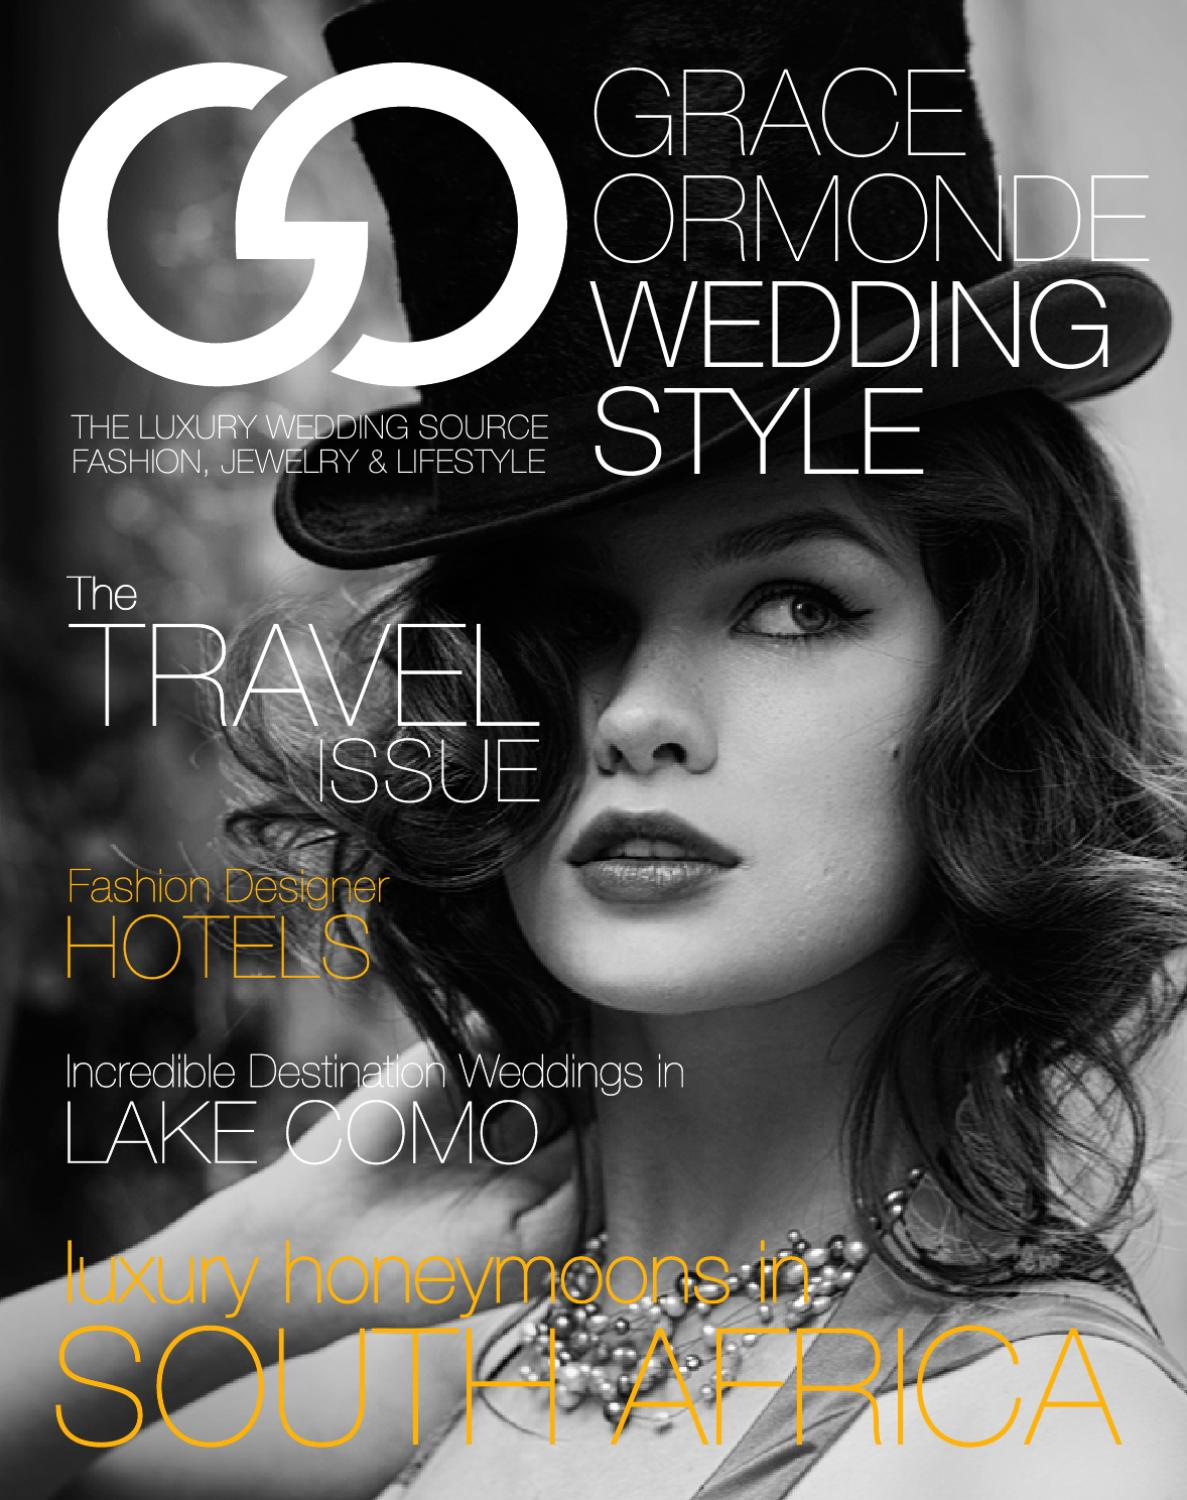 grace ormonde wedding style 2012 digital issue by grace ormonde wedding style issuu